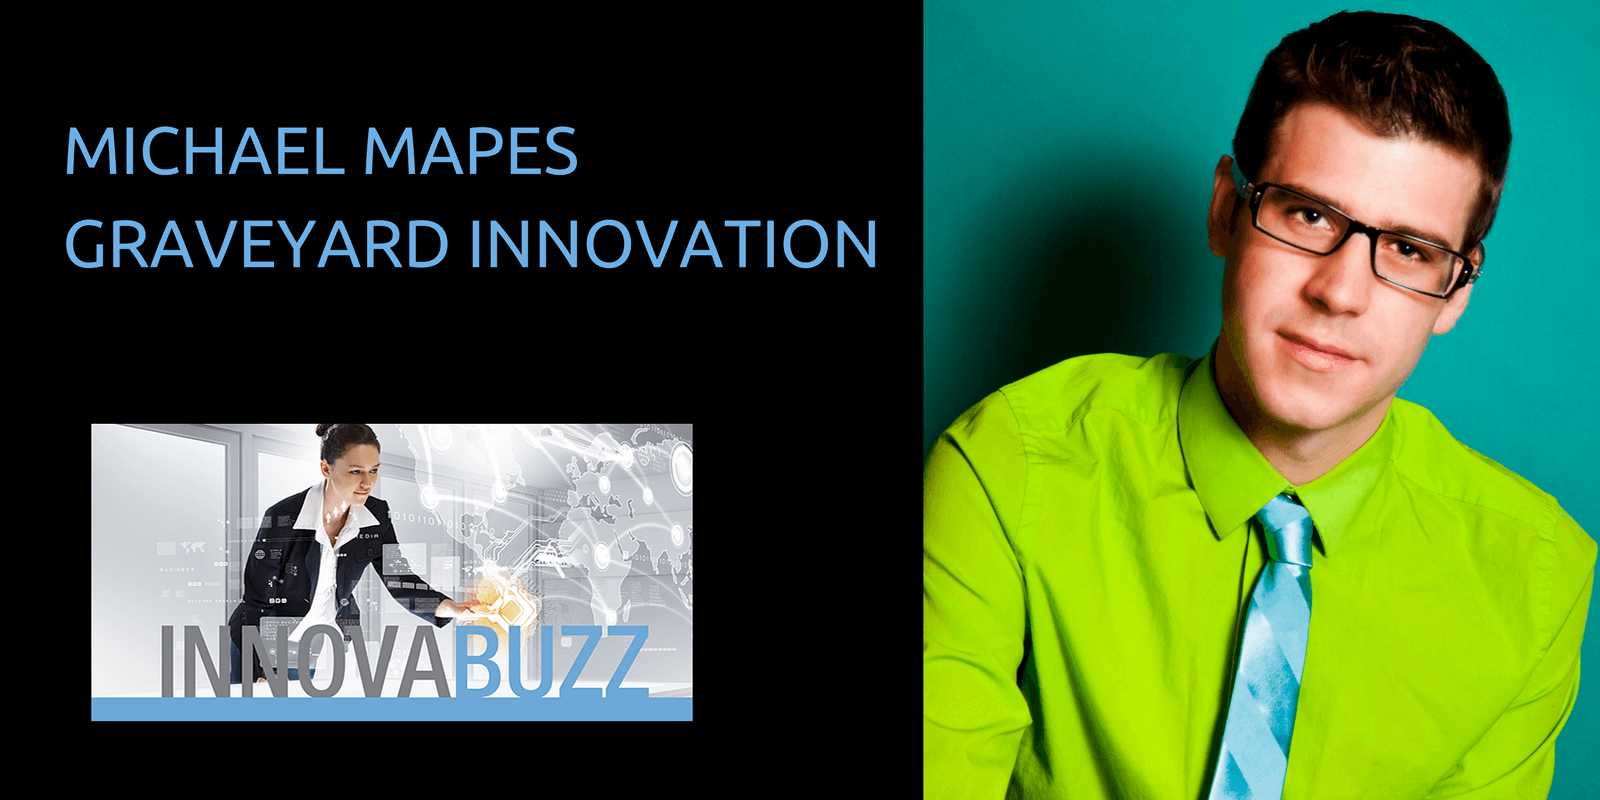 Michael Mapes: Graveyard Innovation